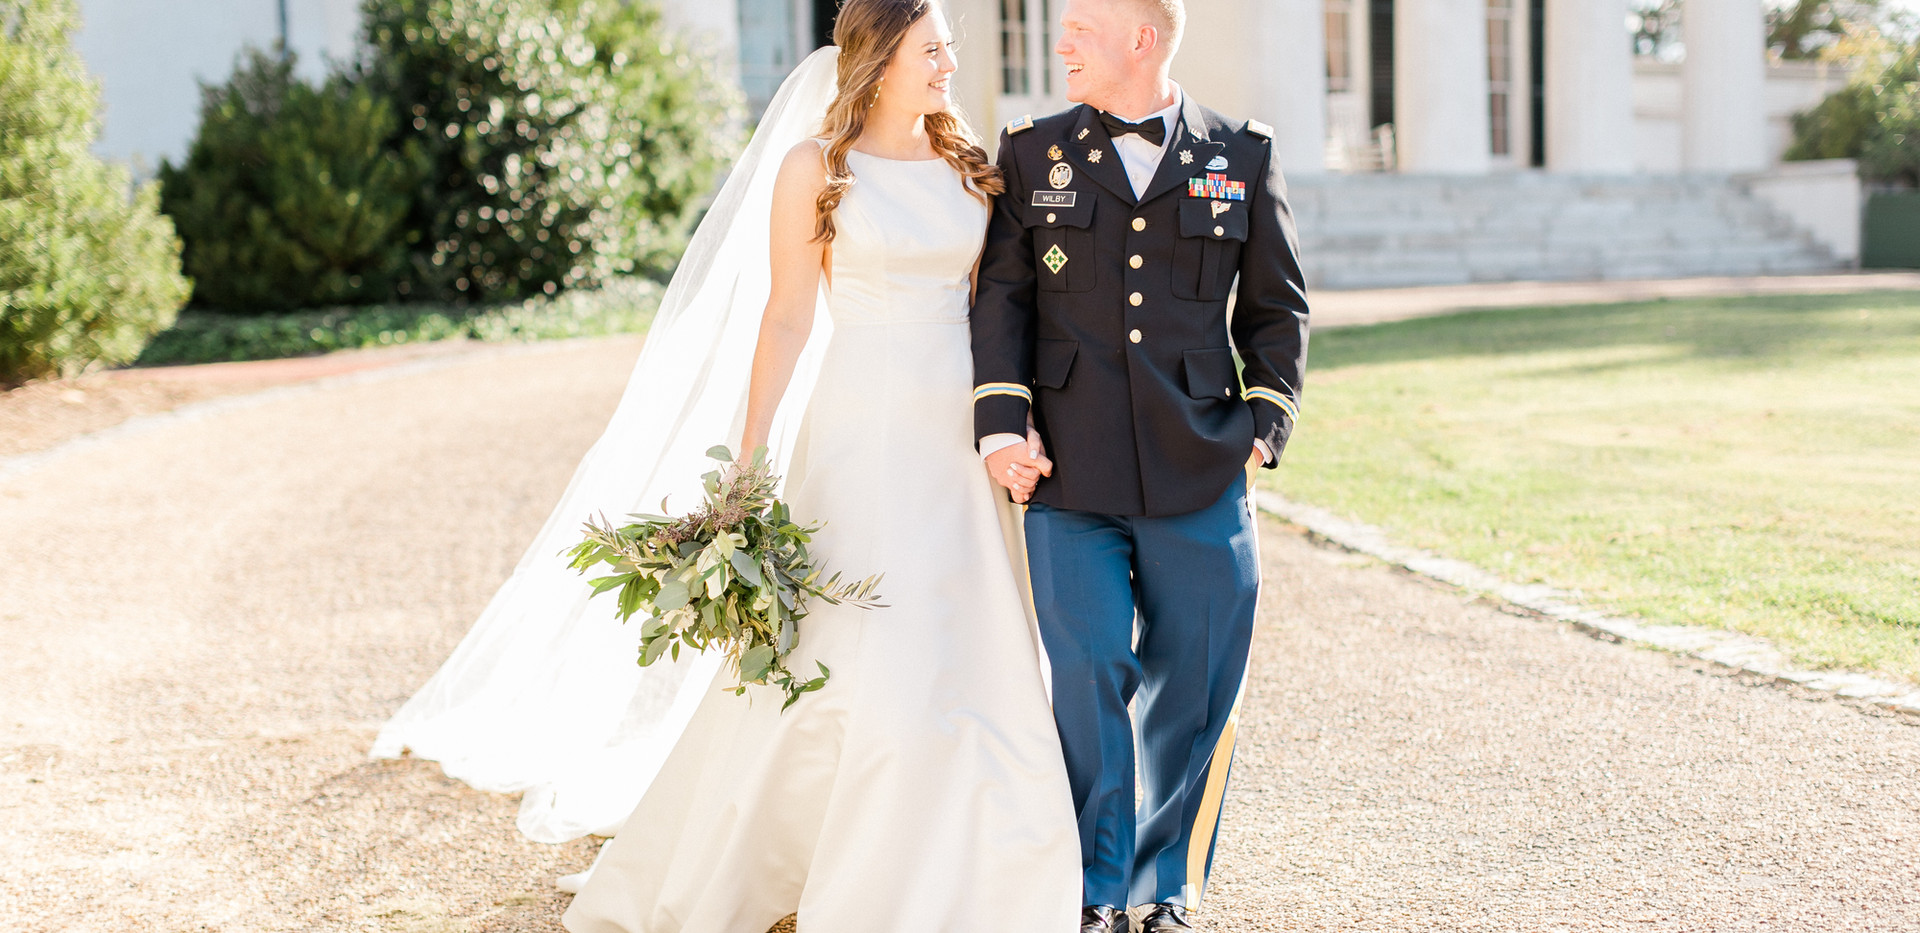 McKenzie and Taylor Wedding 2019-420.jpg